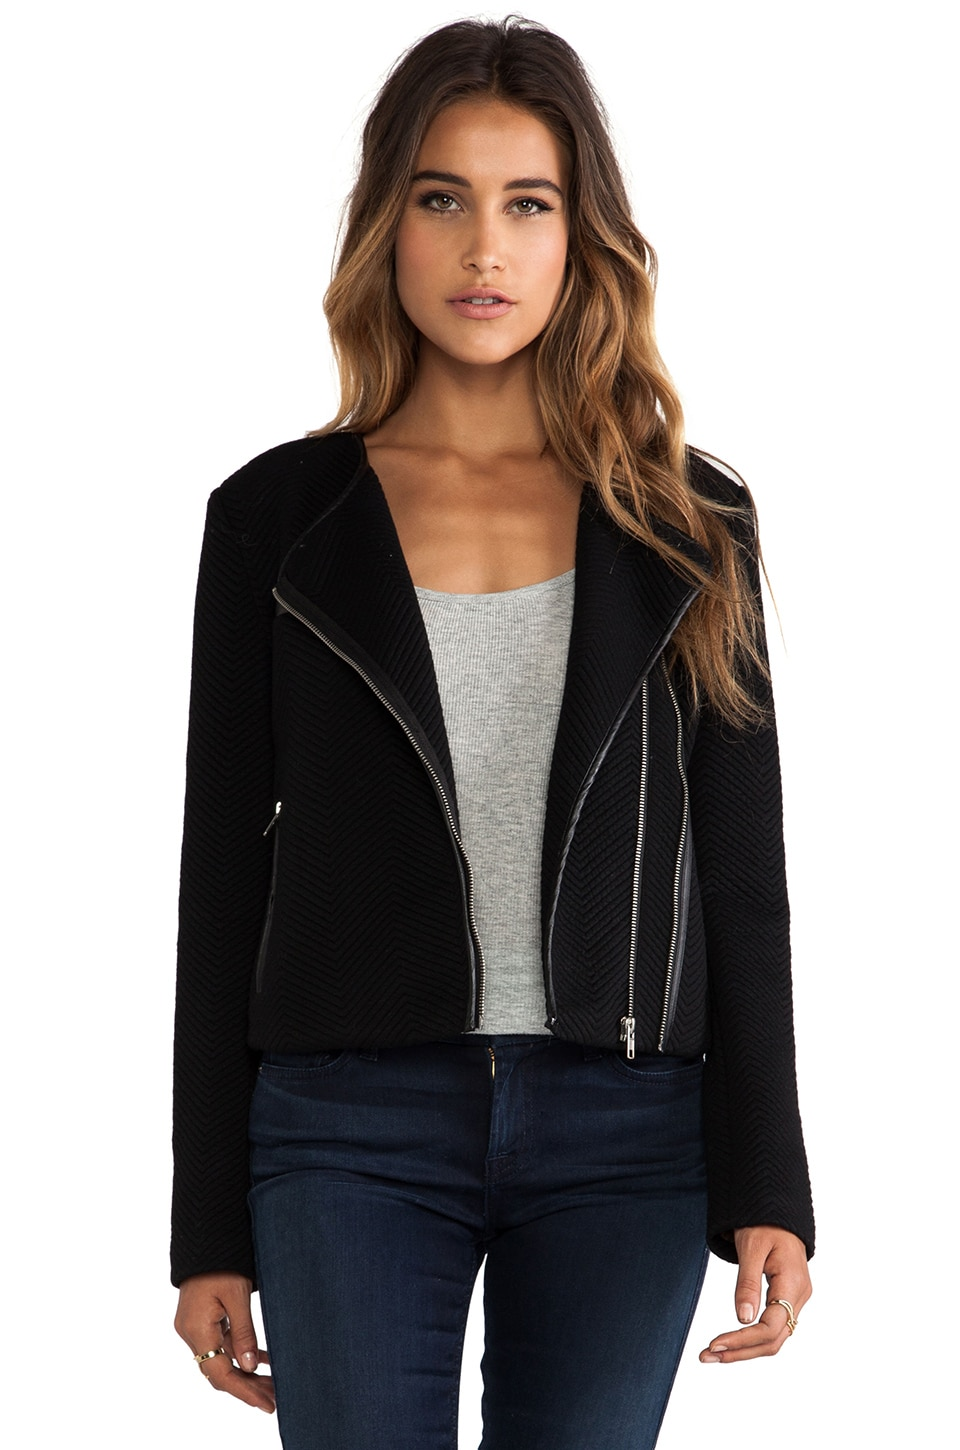 Greylin Karla Moto Jacket in Black